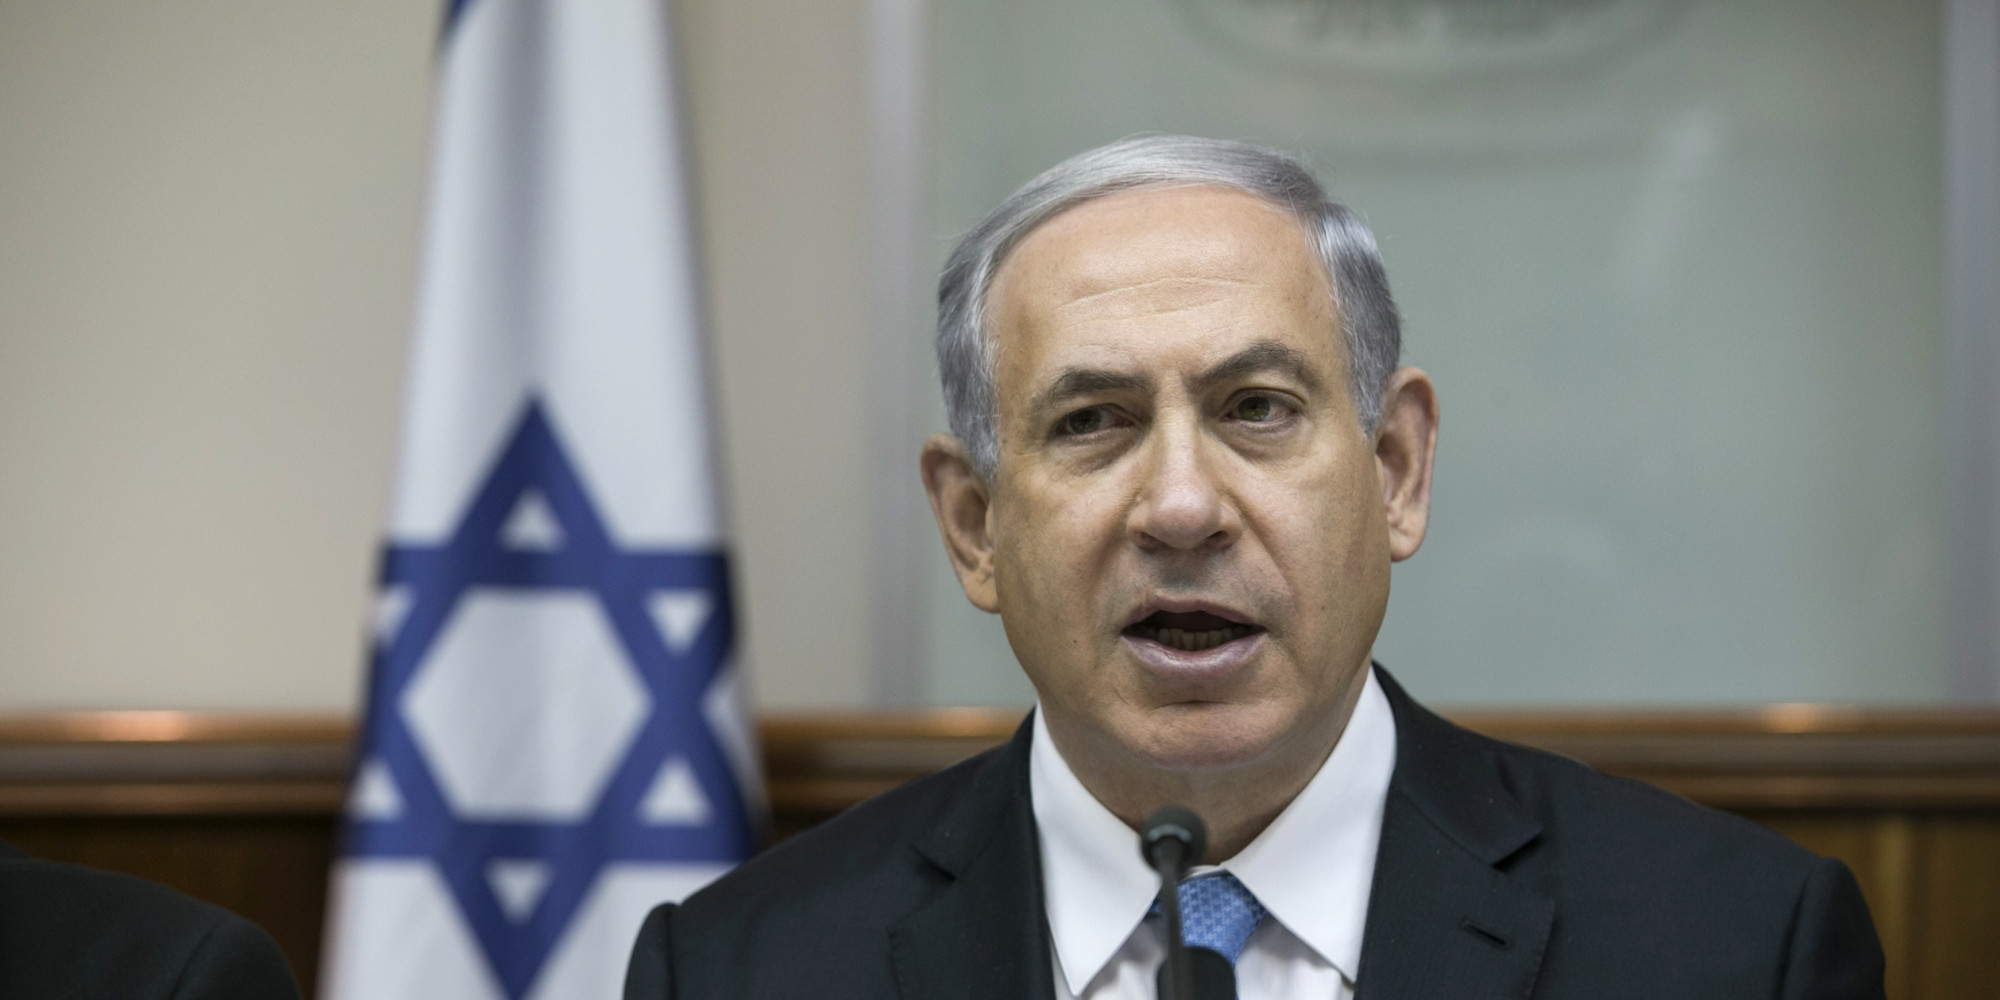 Netanyahu Is Talking To Leading Democrats To Little Effect So Far